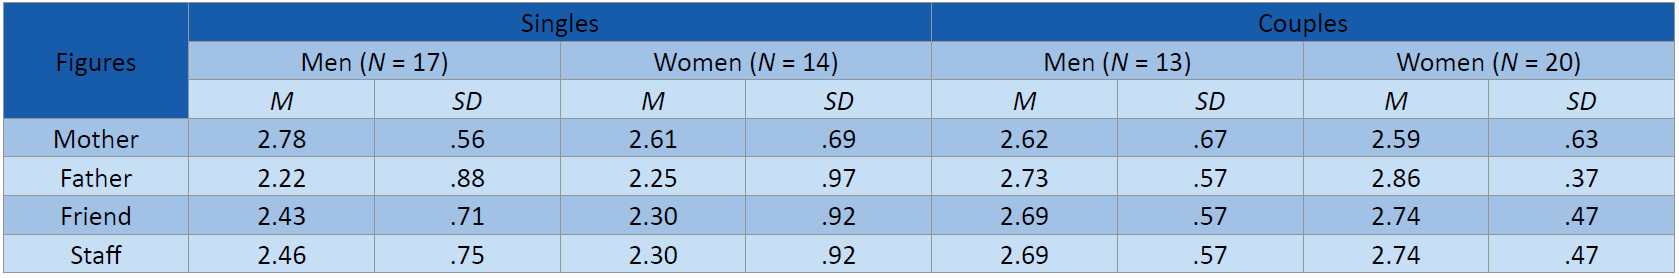 Social Networks Questionnaire: Means and SD according to Status and Gender (N = 64).